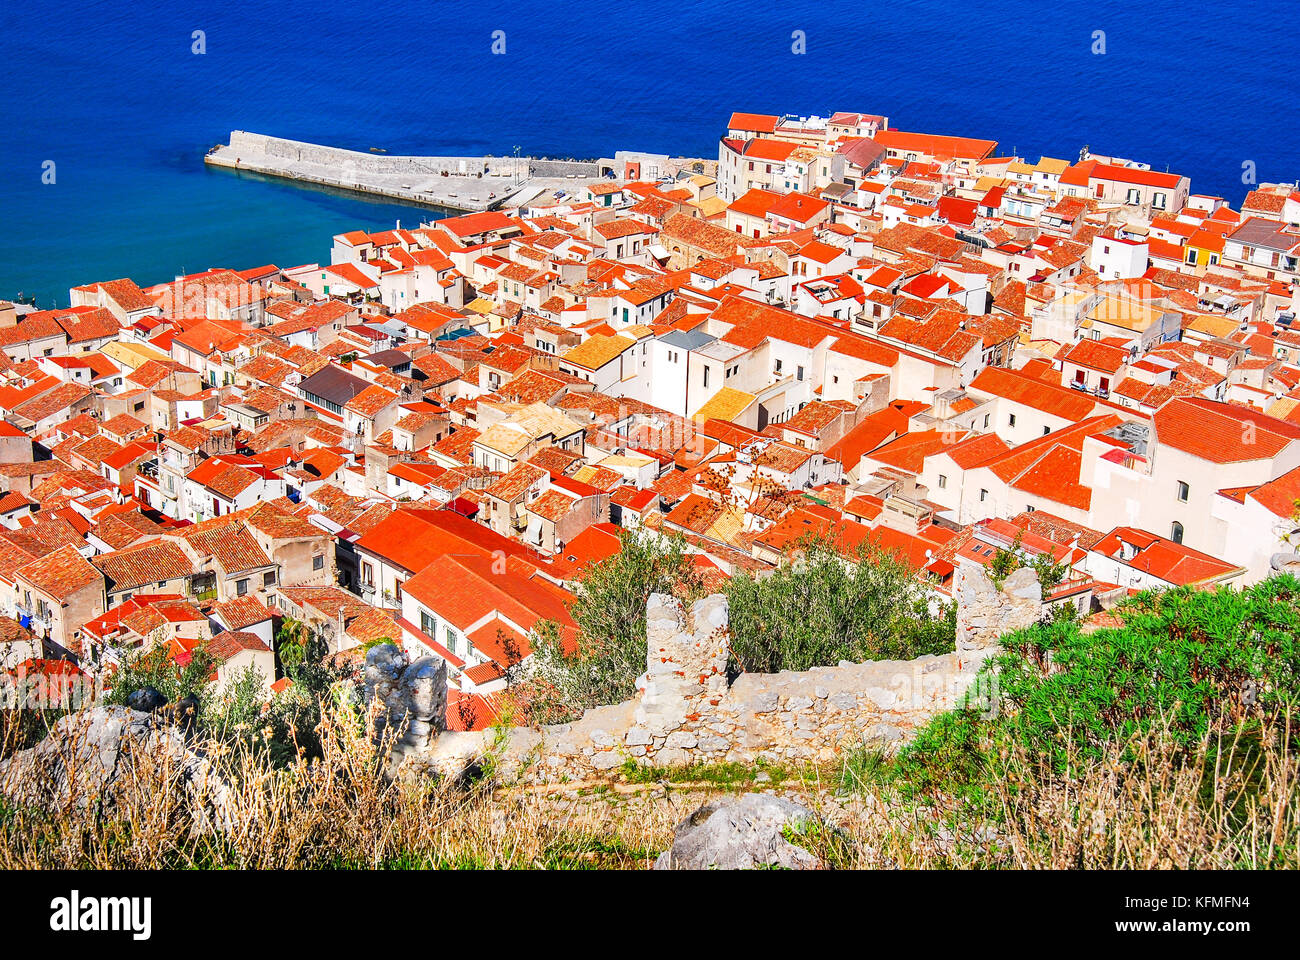 Cefalu, Sicily. Aerial medieval view of sicilian city Cefalu. Province of Palermo, Italy. - Stock Image